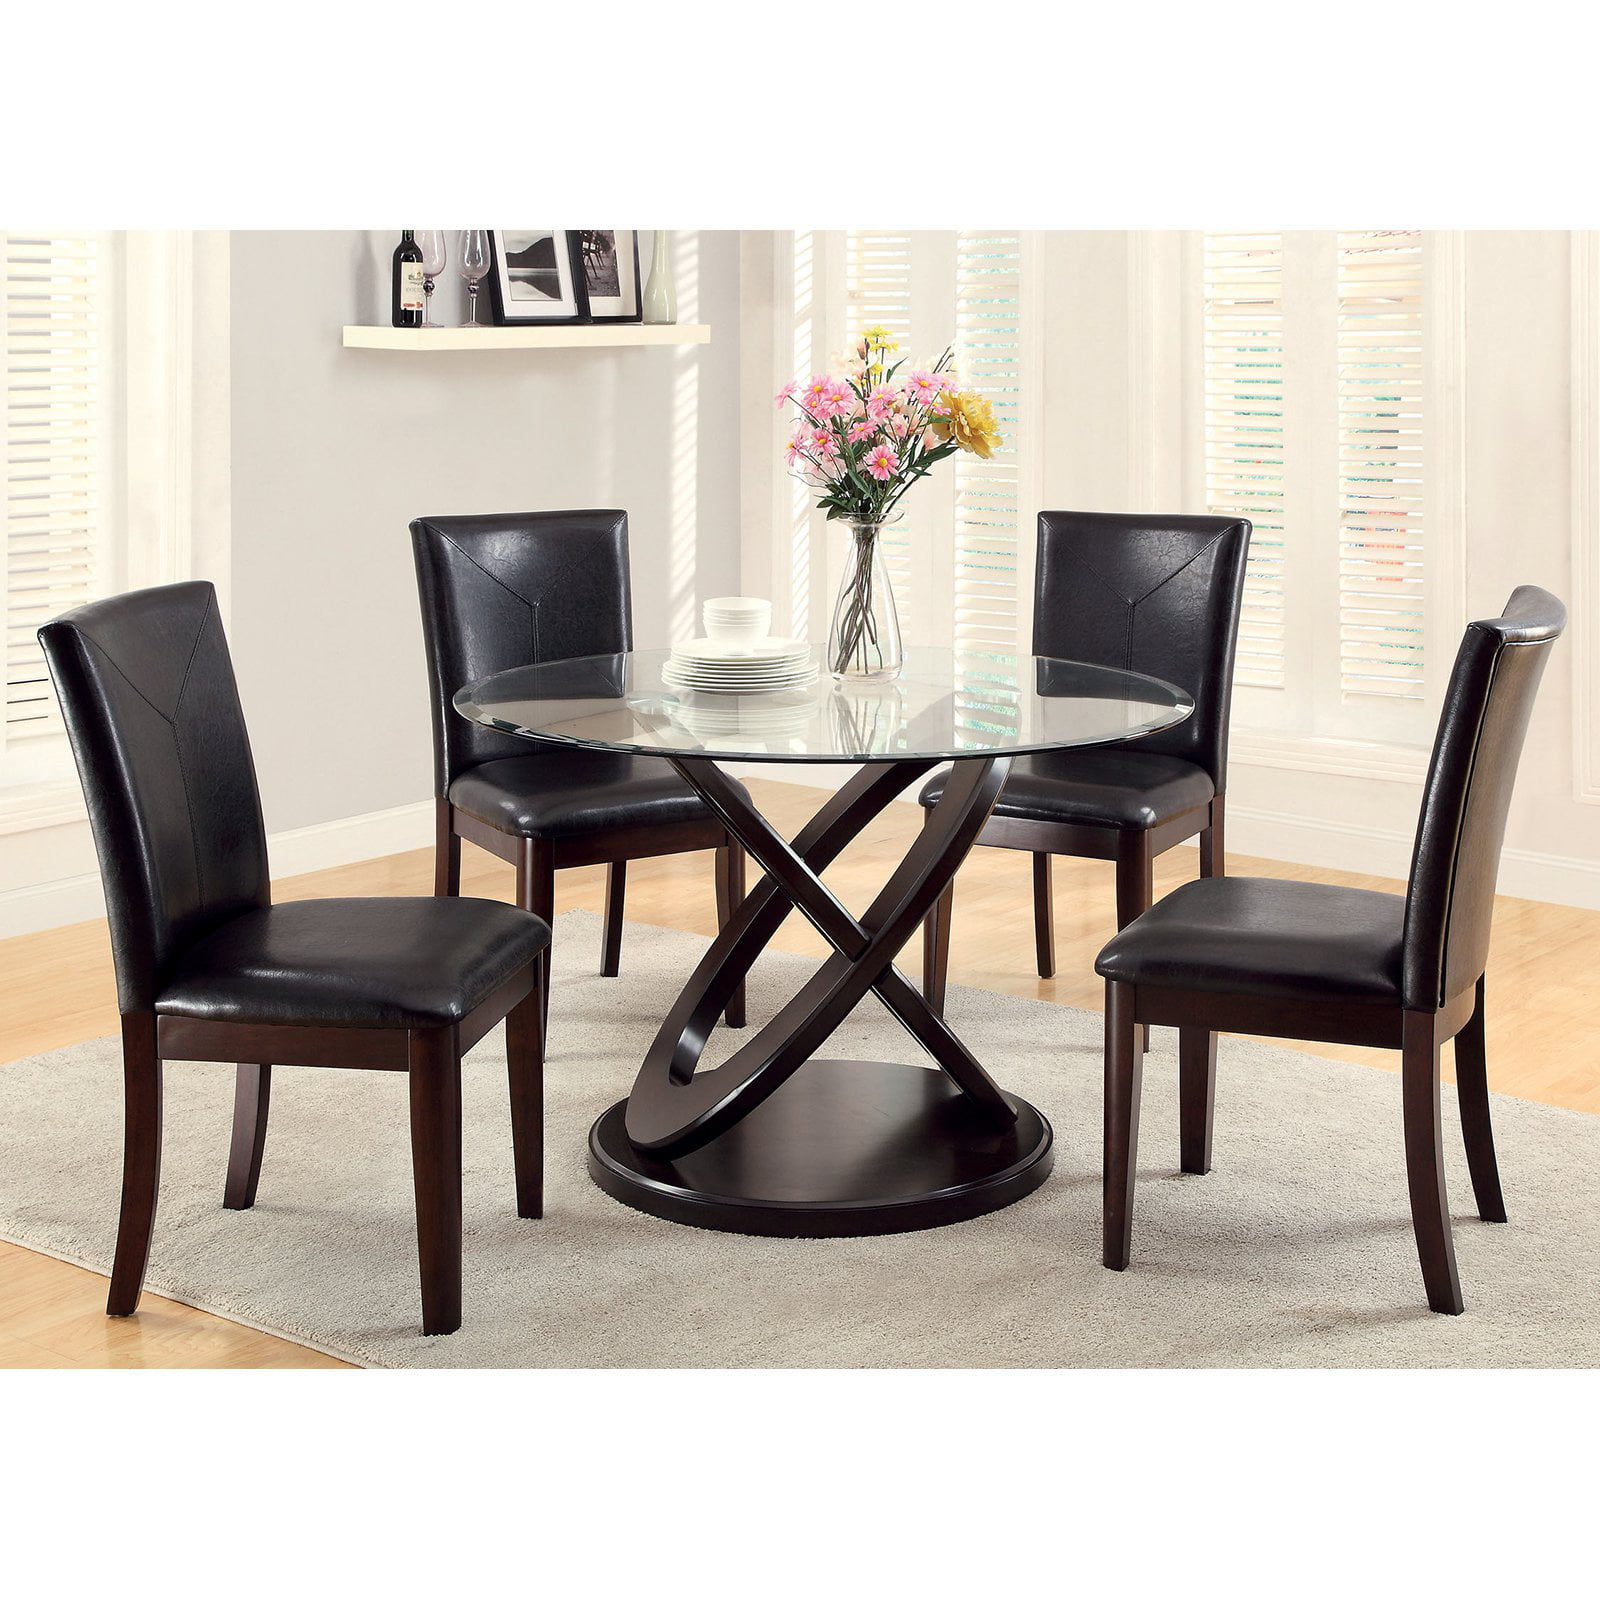 Furniture of america ollivander 5 piece glass top dining table set dark walnut walmart com